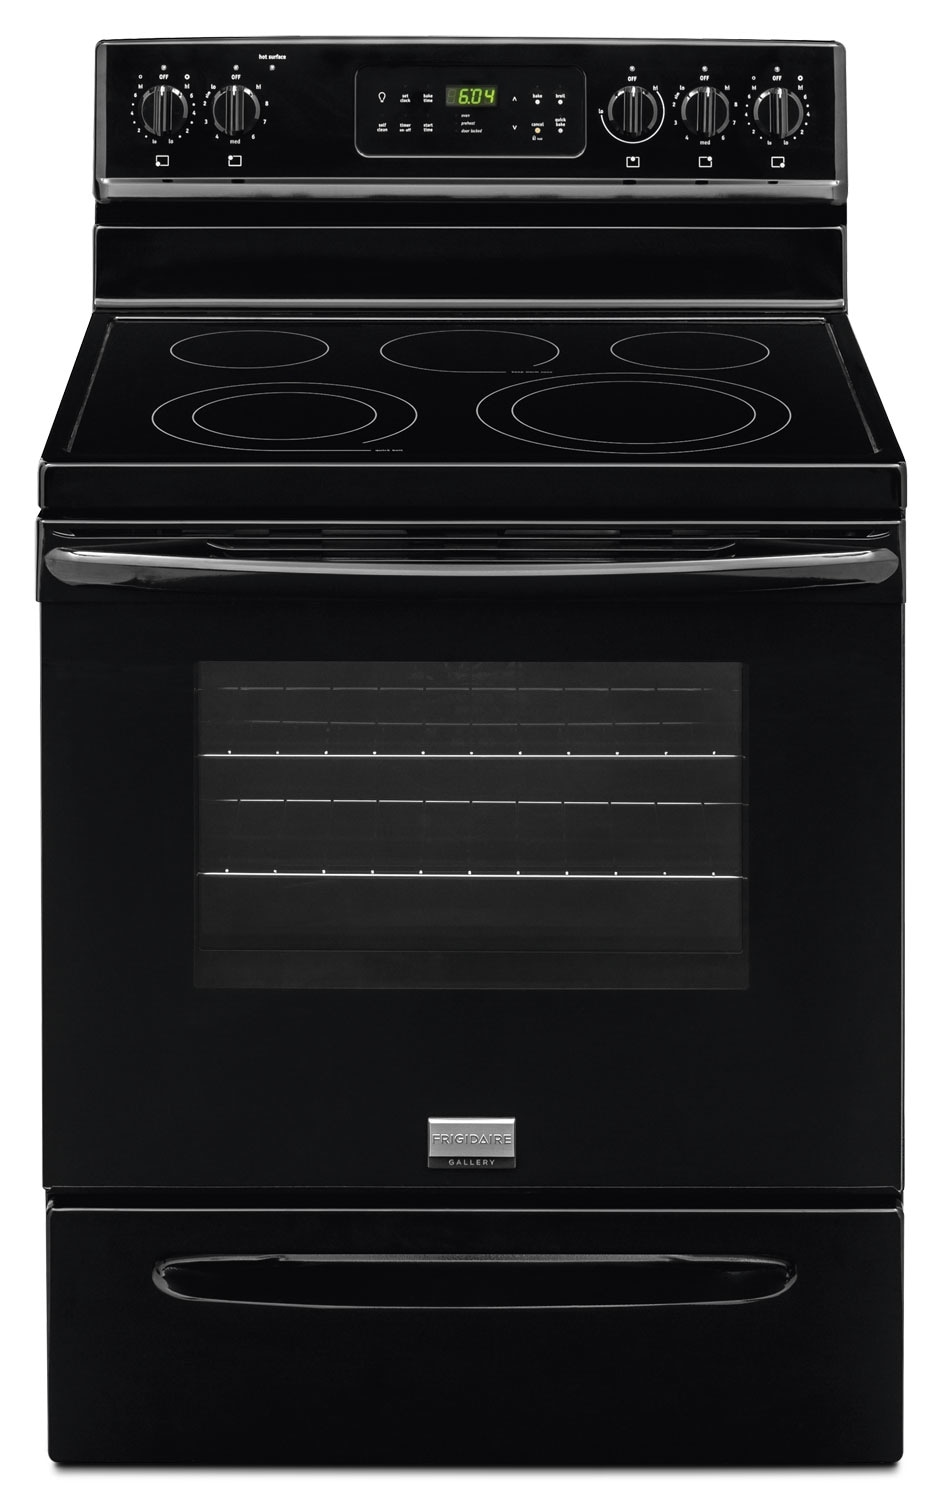 Cooking Products - Frigidaire Gallery 5.7 Cu. Ft. Freestanding Electric Range - Black